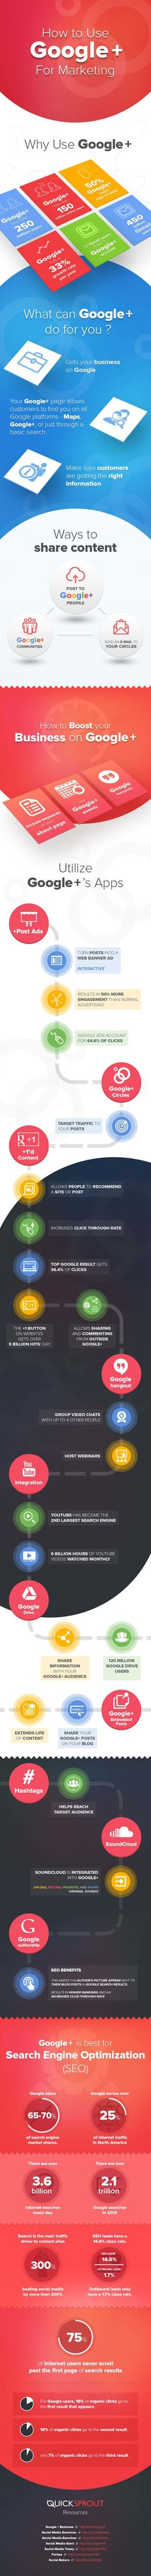 How to Use Google Plus for Marketing #infographic